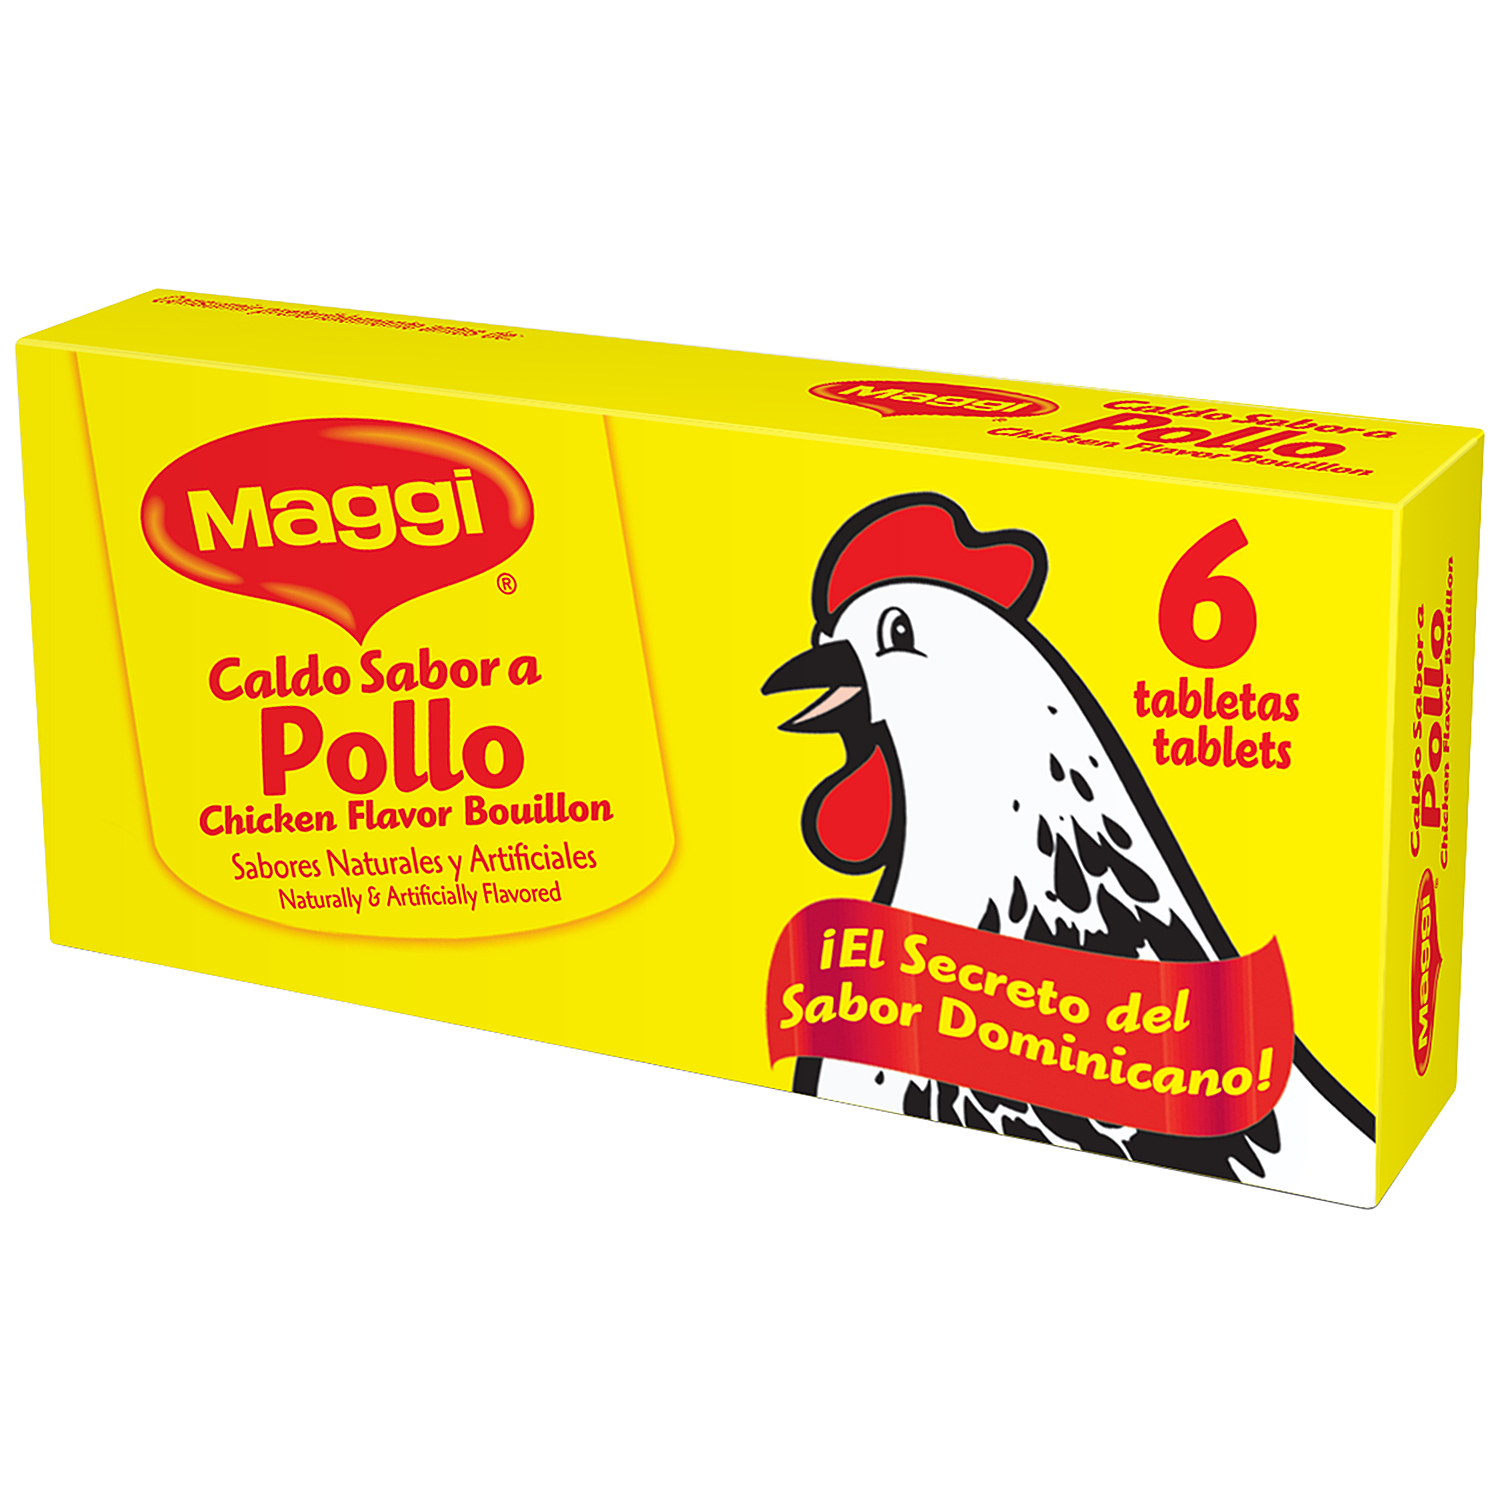 Maggi Chicken Flavor Bouillon Tablets, 6 count, 2.4 oz